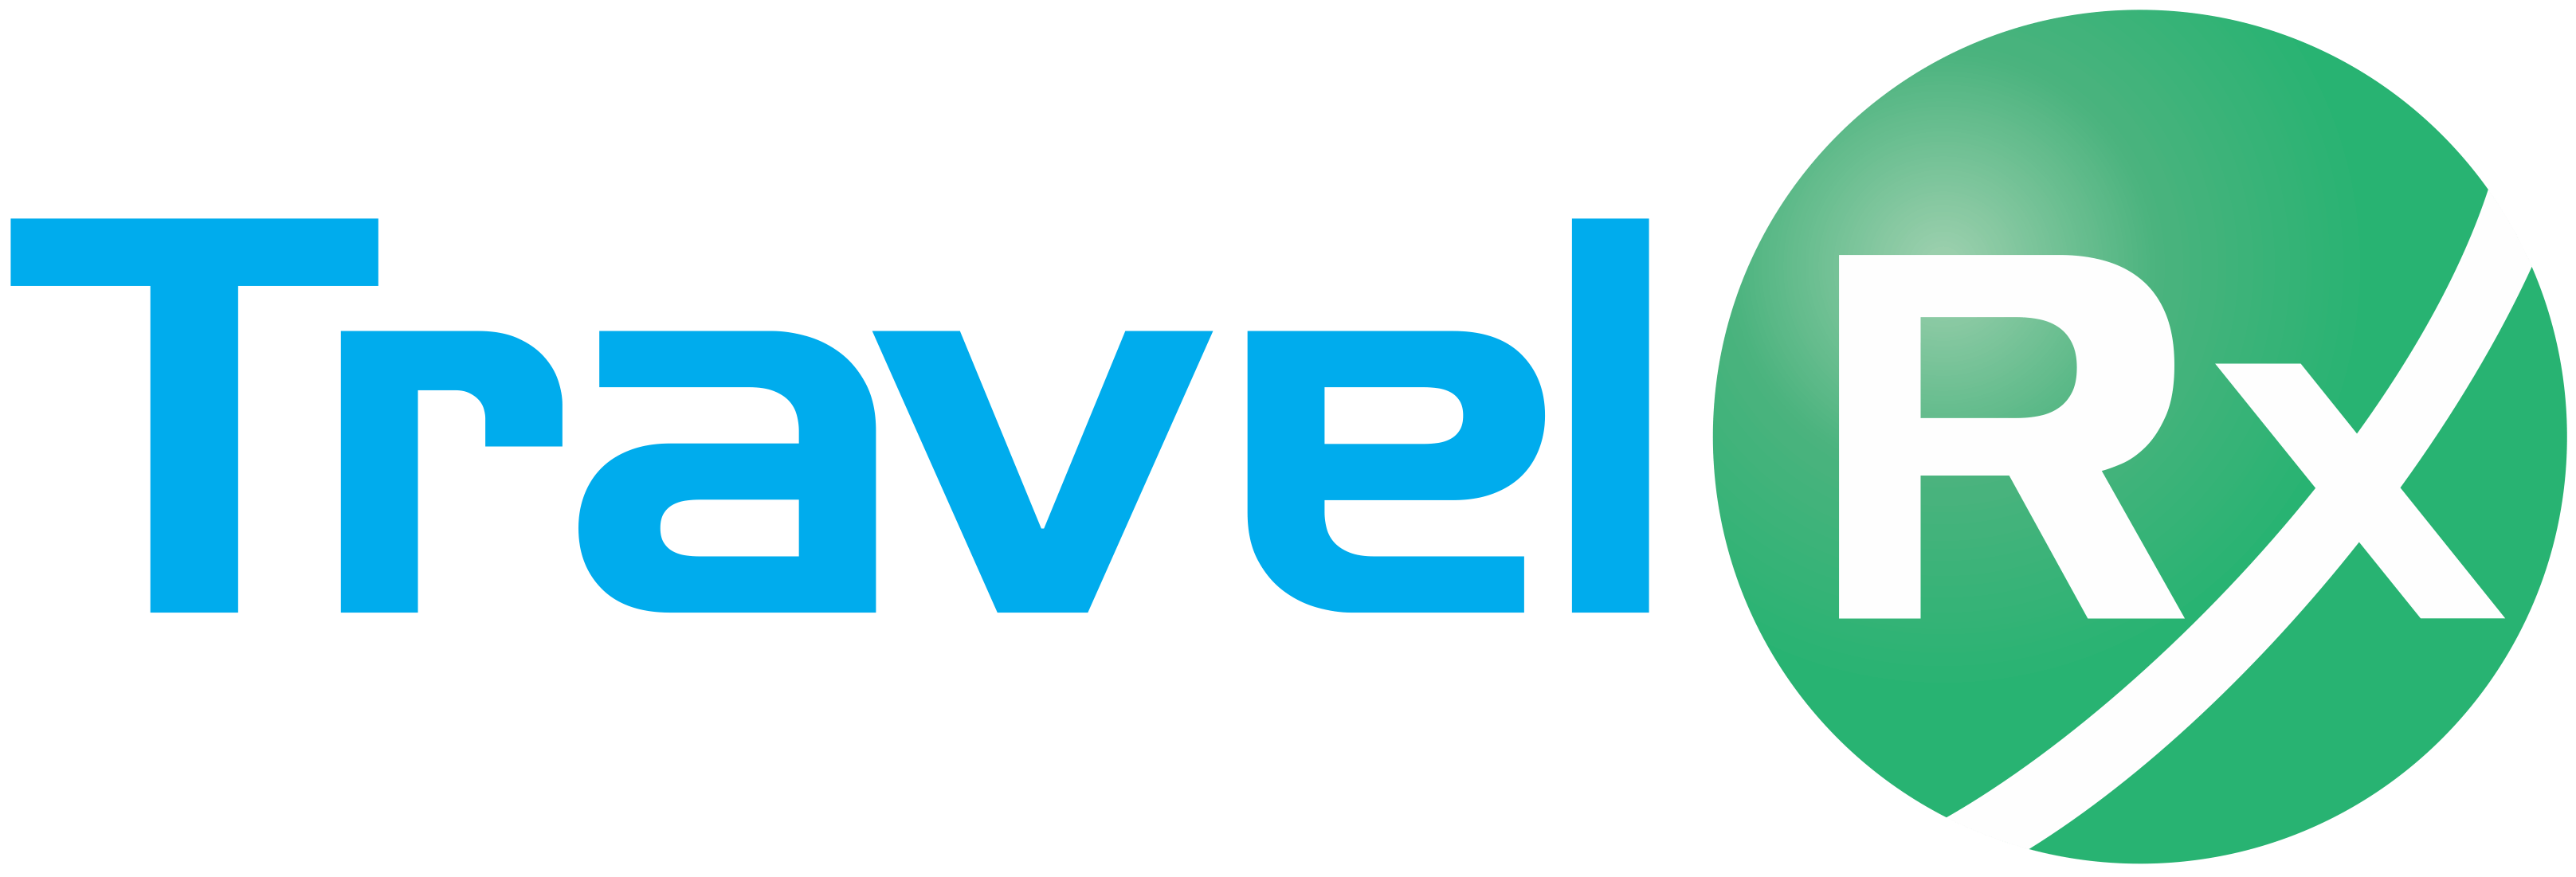 TravelRx logo